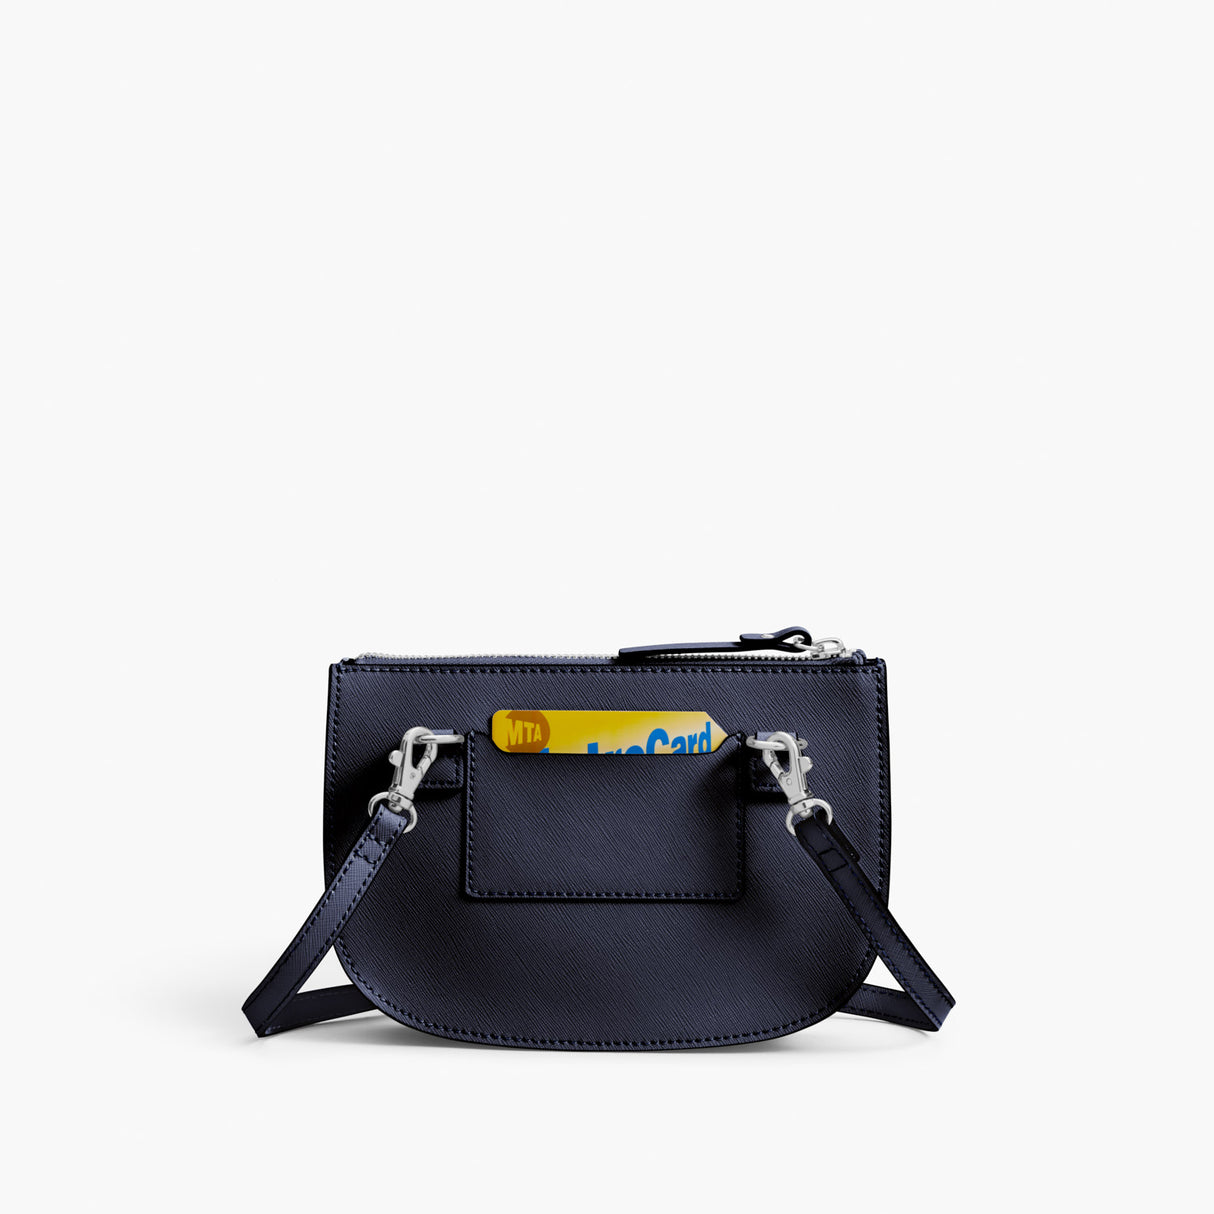 Back - Waverley 2 - Saffiano Leather - Deep Navy / Silver / Azure - Crossbody Bag - Lo & Sons